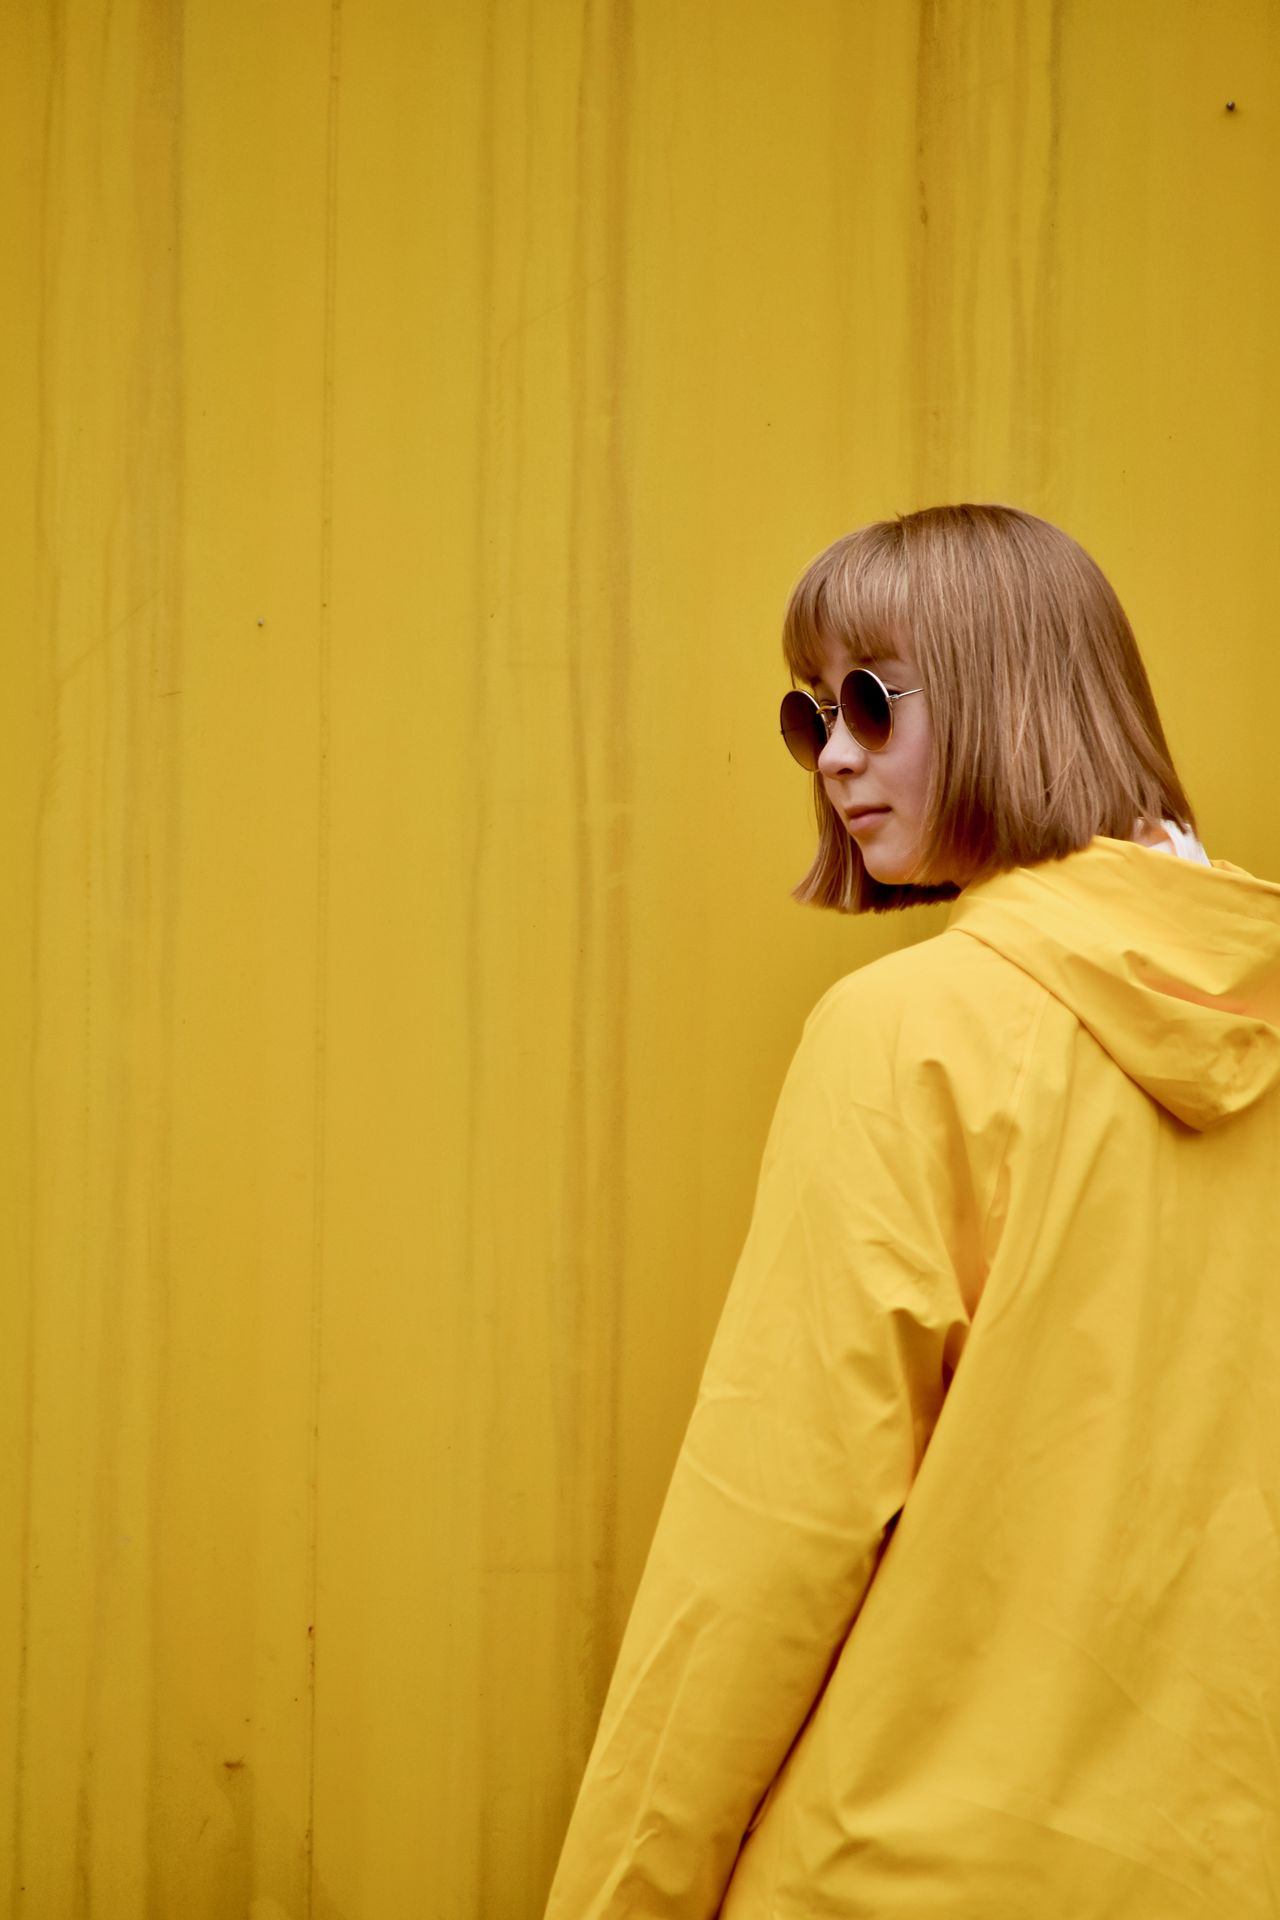 Yellow, Helsinki 30.9.2017 with Nikon D7200 Bright colors Busy day Cityscape Colors Helsinki Nikon Nikon D7200 color potrait nikonphotography one person people raincoat urban yellow yellow raincoat yellow themes Paint the Town Yellow Fresh on Market 2017